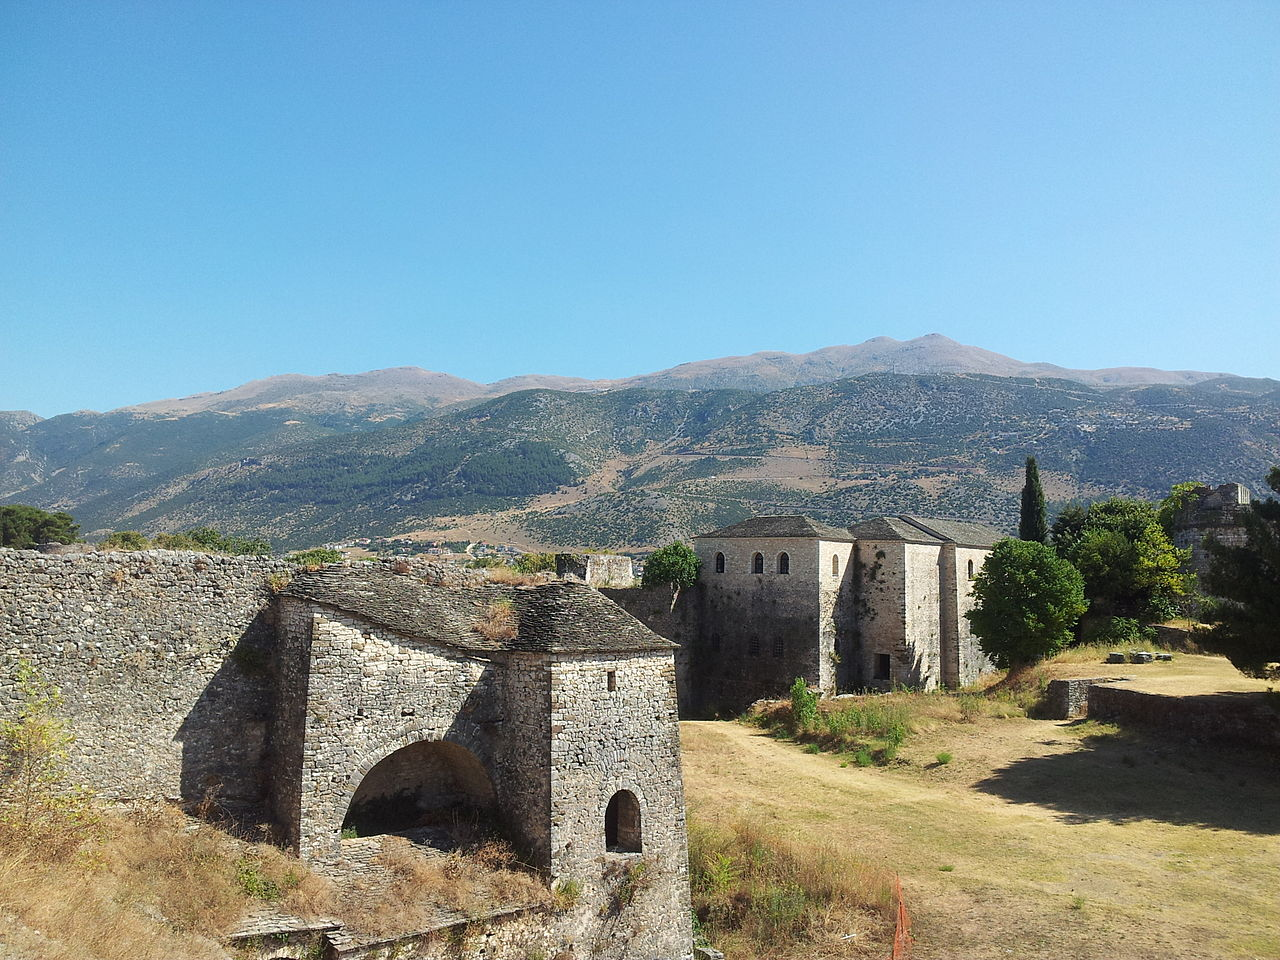 Ioannina Castle (from the inside